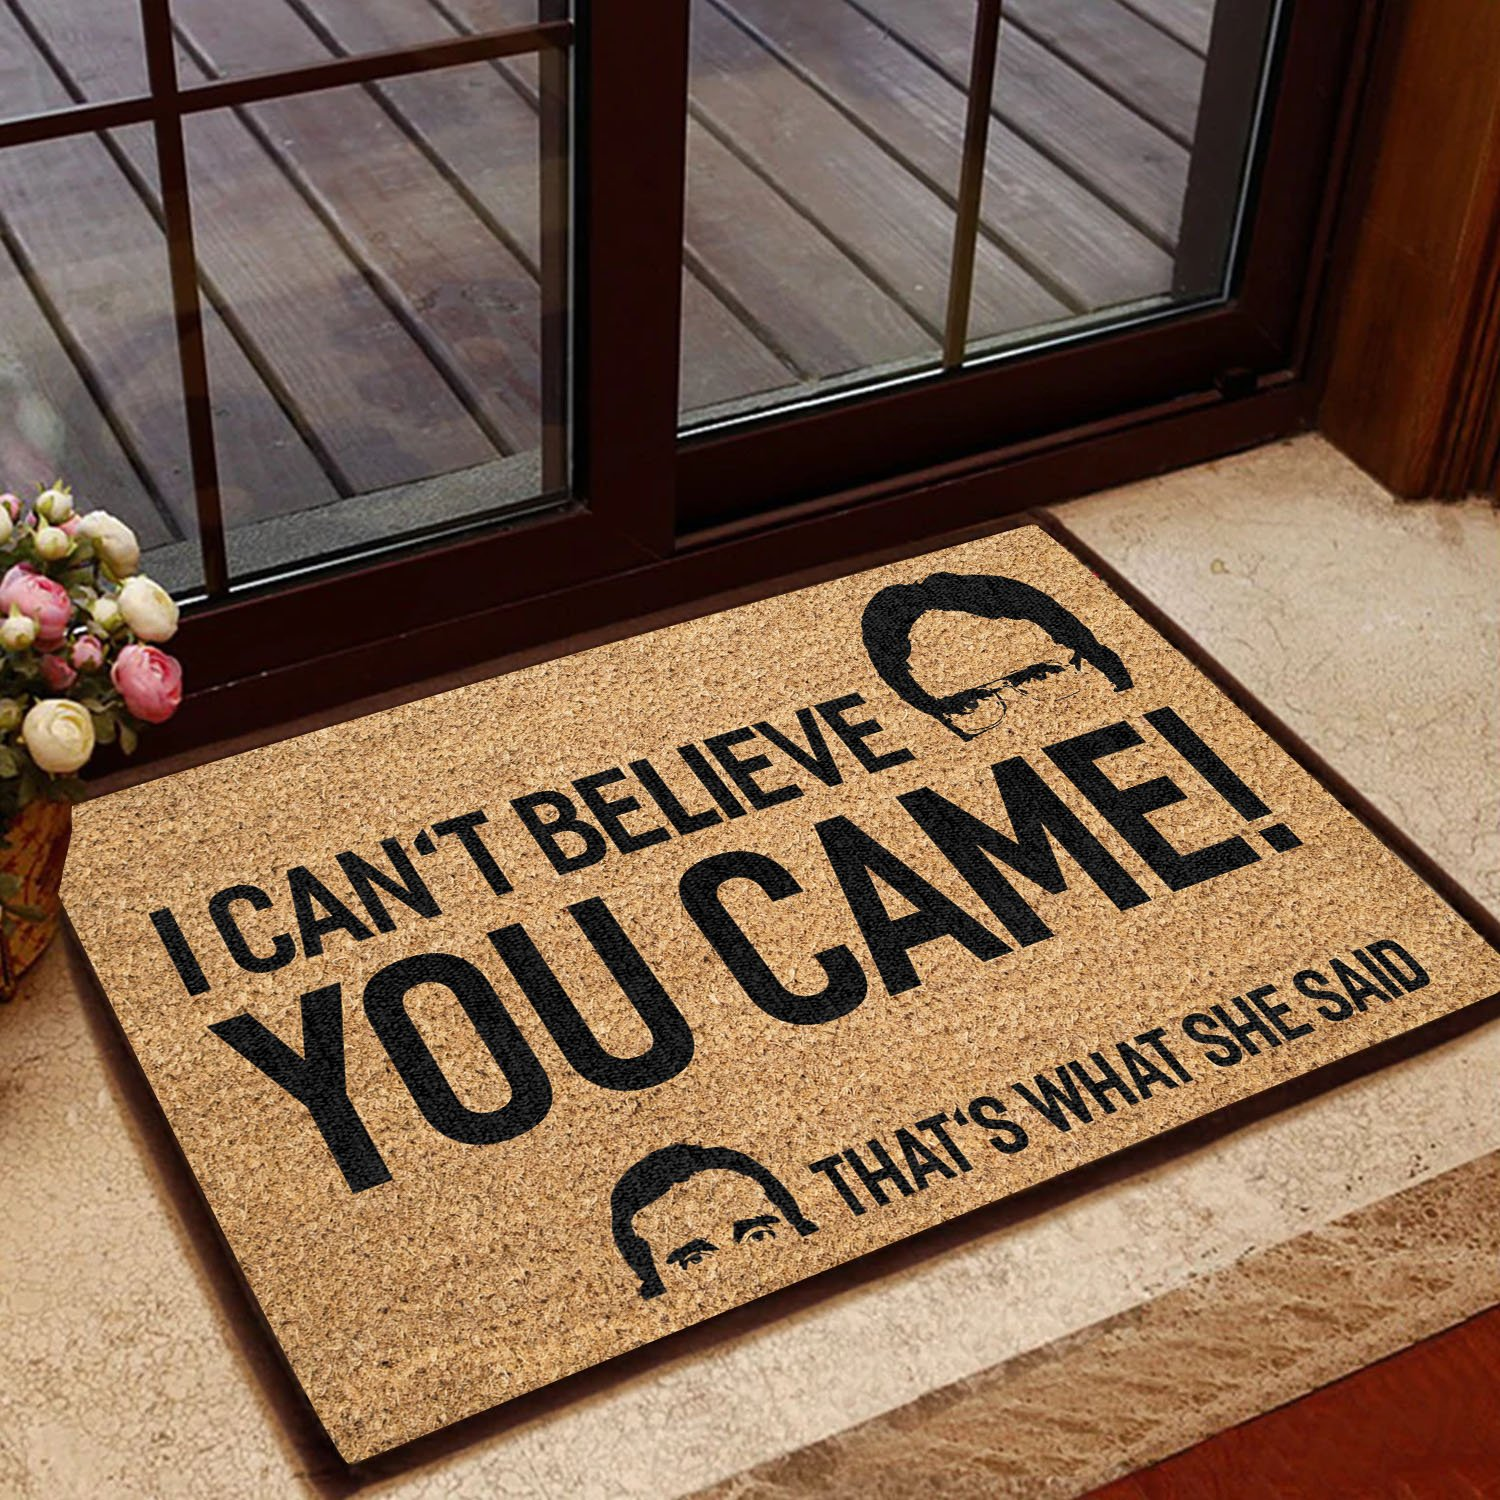 I can't believe you came that's what she said doormat - Picture 1